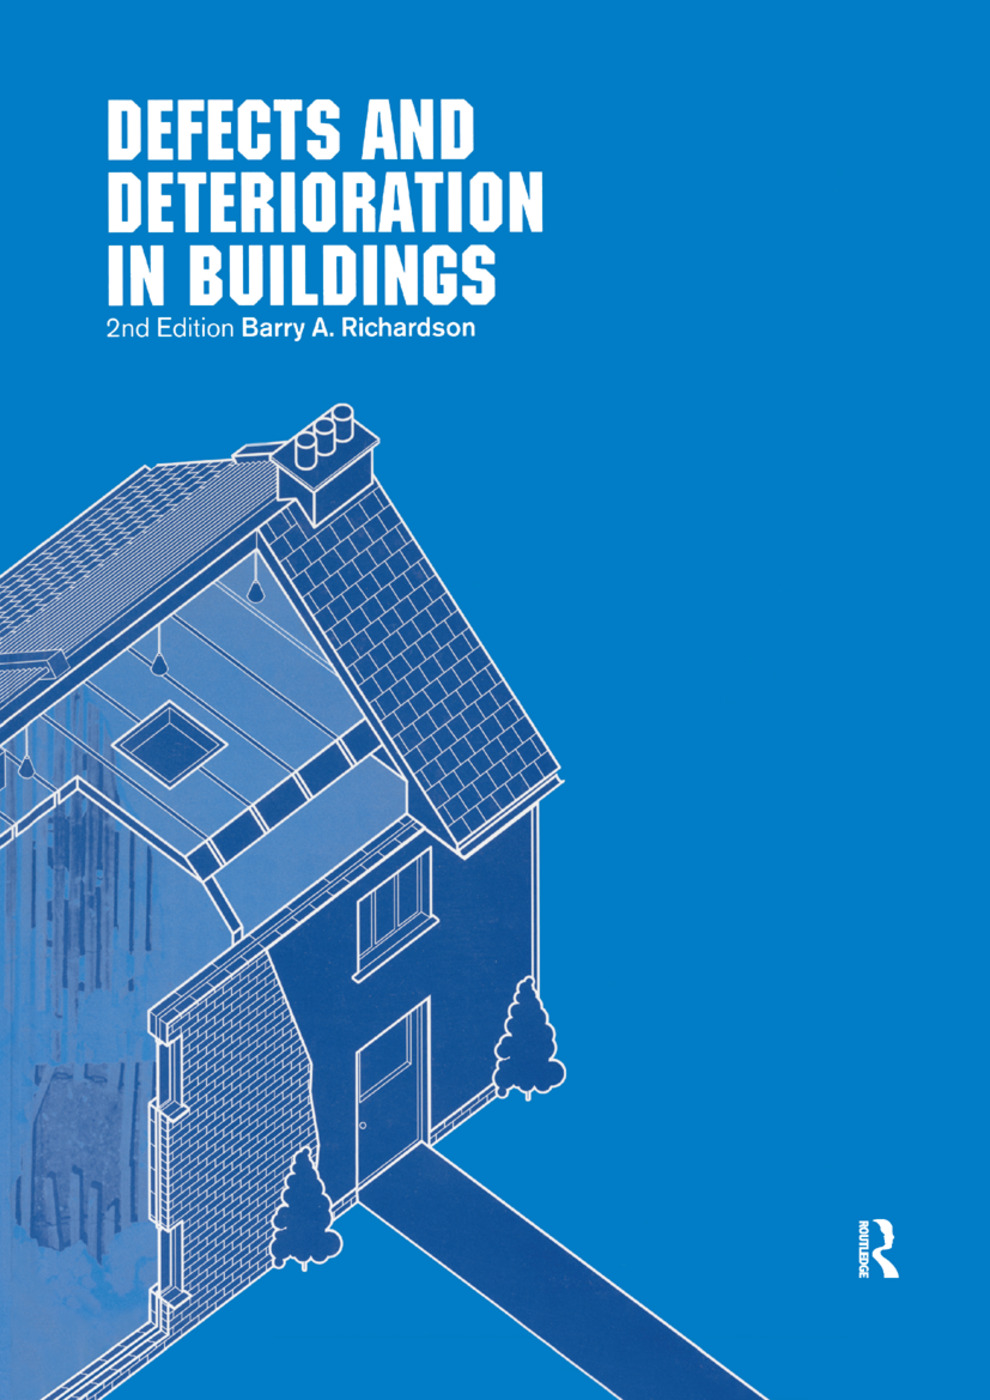 Defects and Deterioration in Buildings: A Practical Guide to the Science and Technology of Material Failure book cover